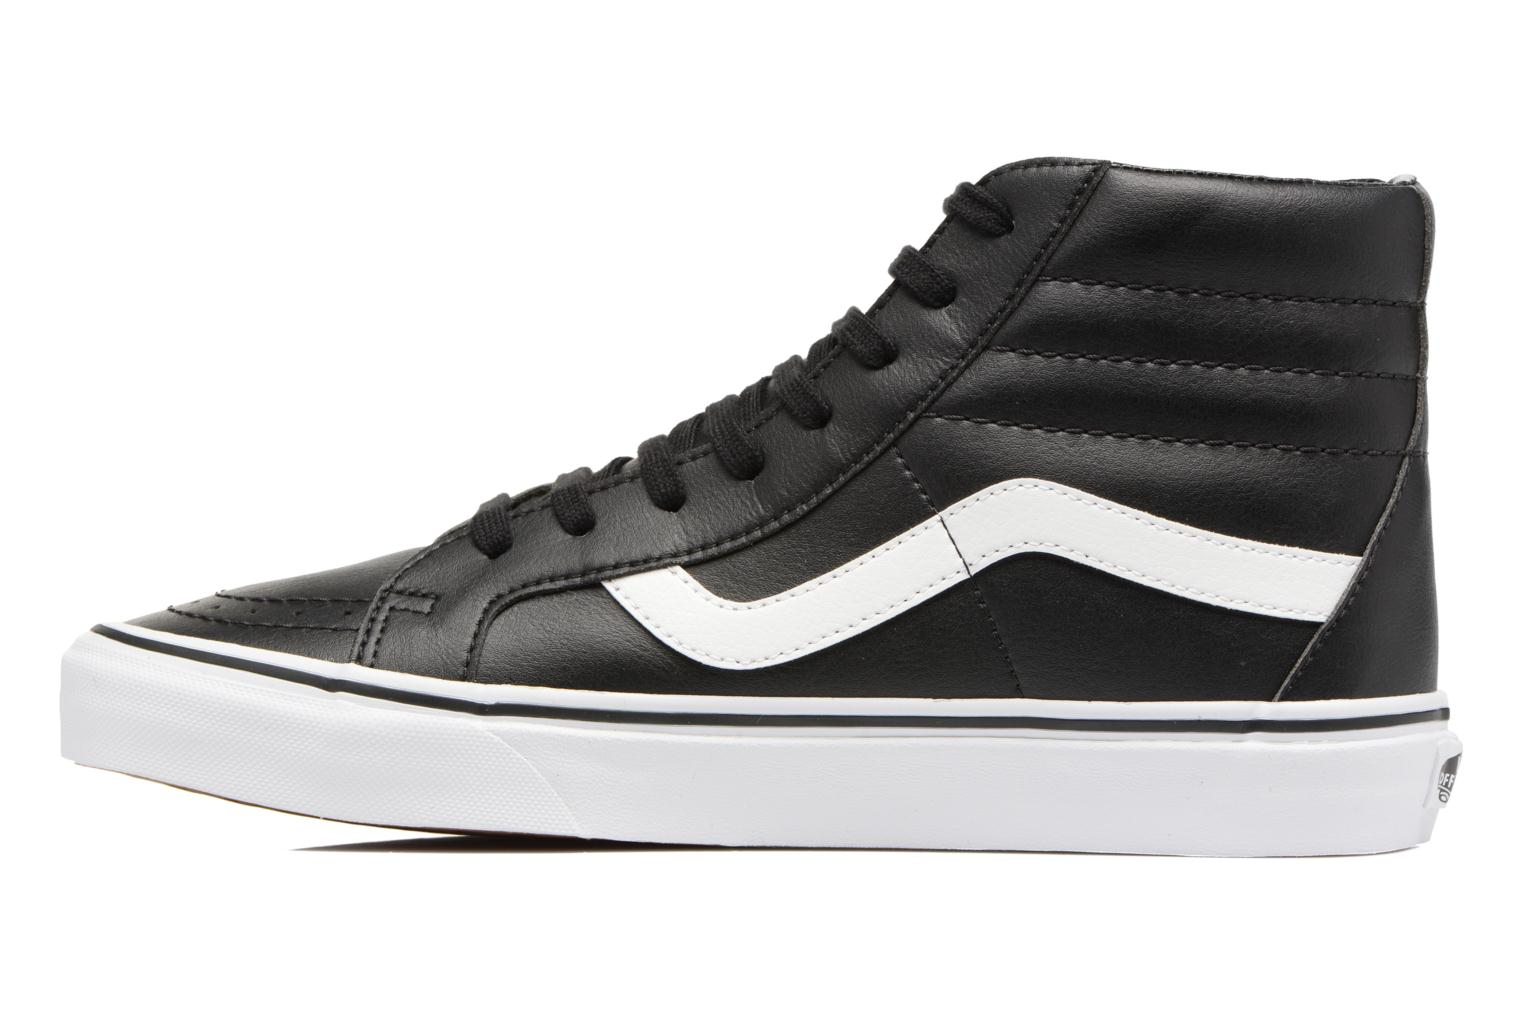 Sk8-Hi Reissue Black/true white